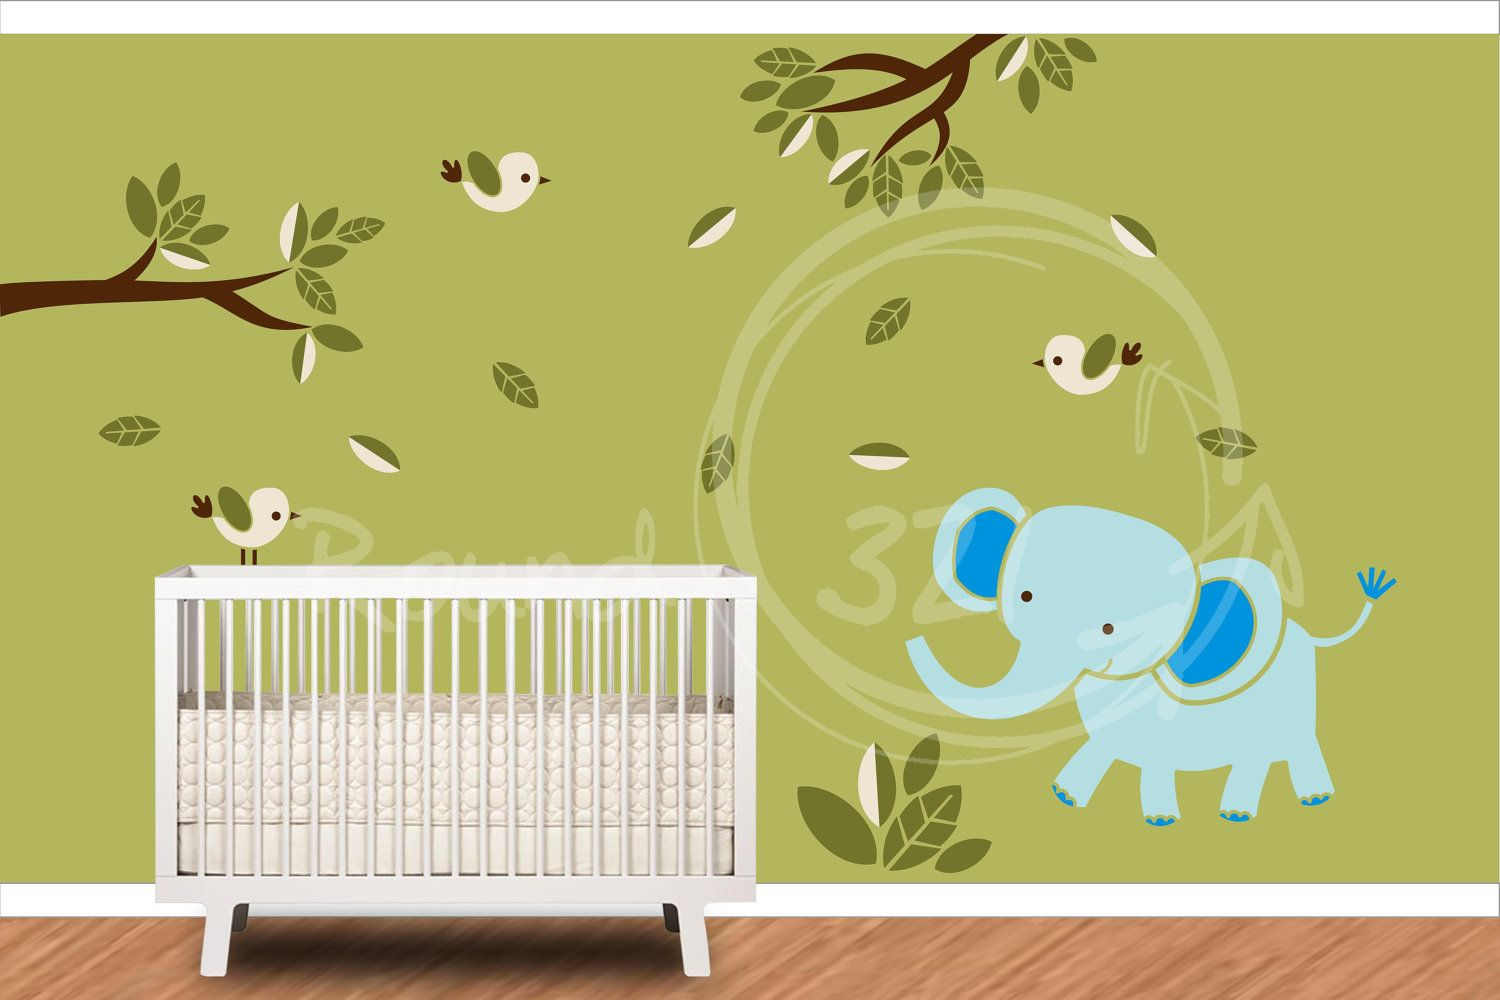 Perfect Monkey Wall Decor For Nursery Composition - The Wall Art ...